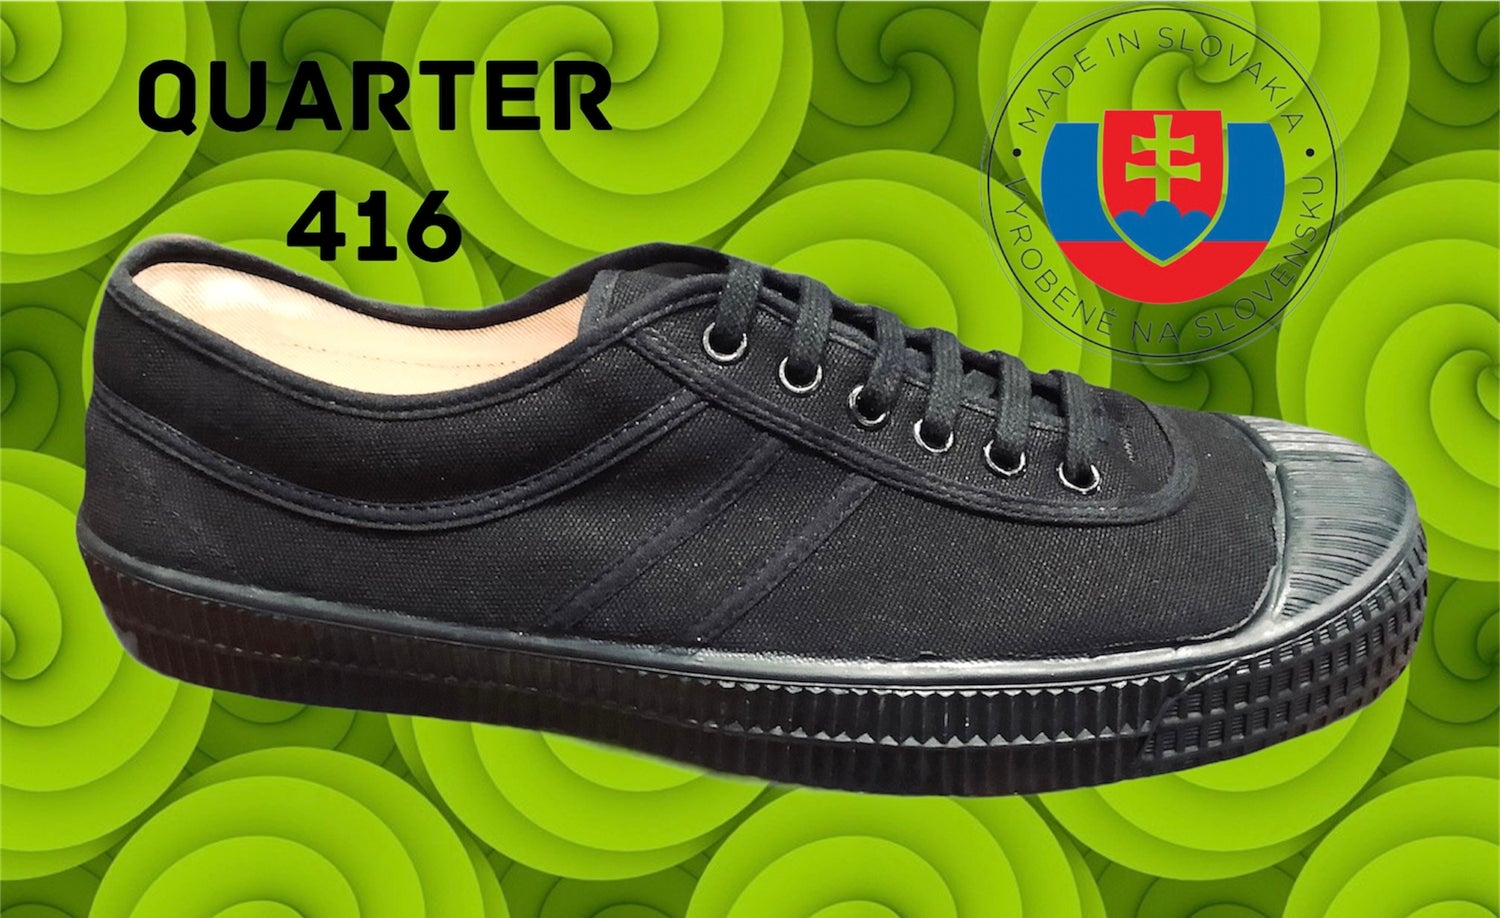 Image of VEGANCRAFT canvas all black plimsoll shoes made in Slovakia